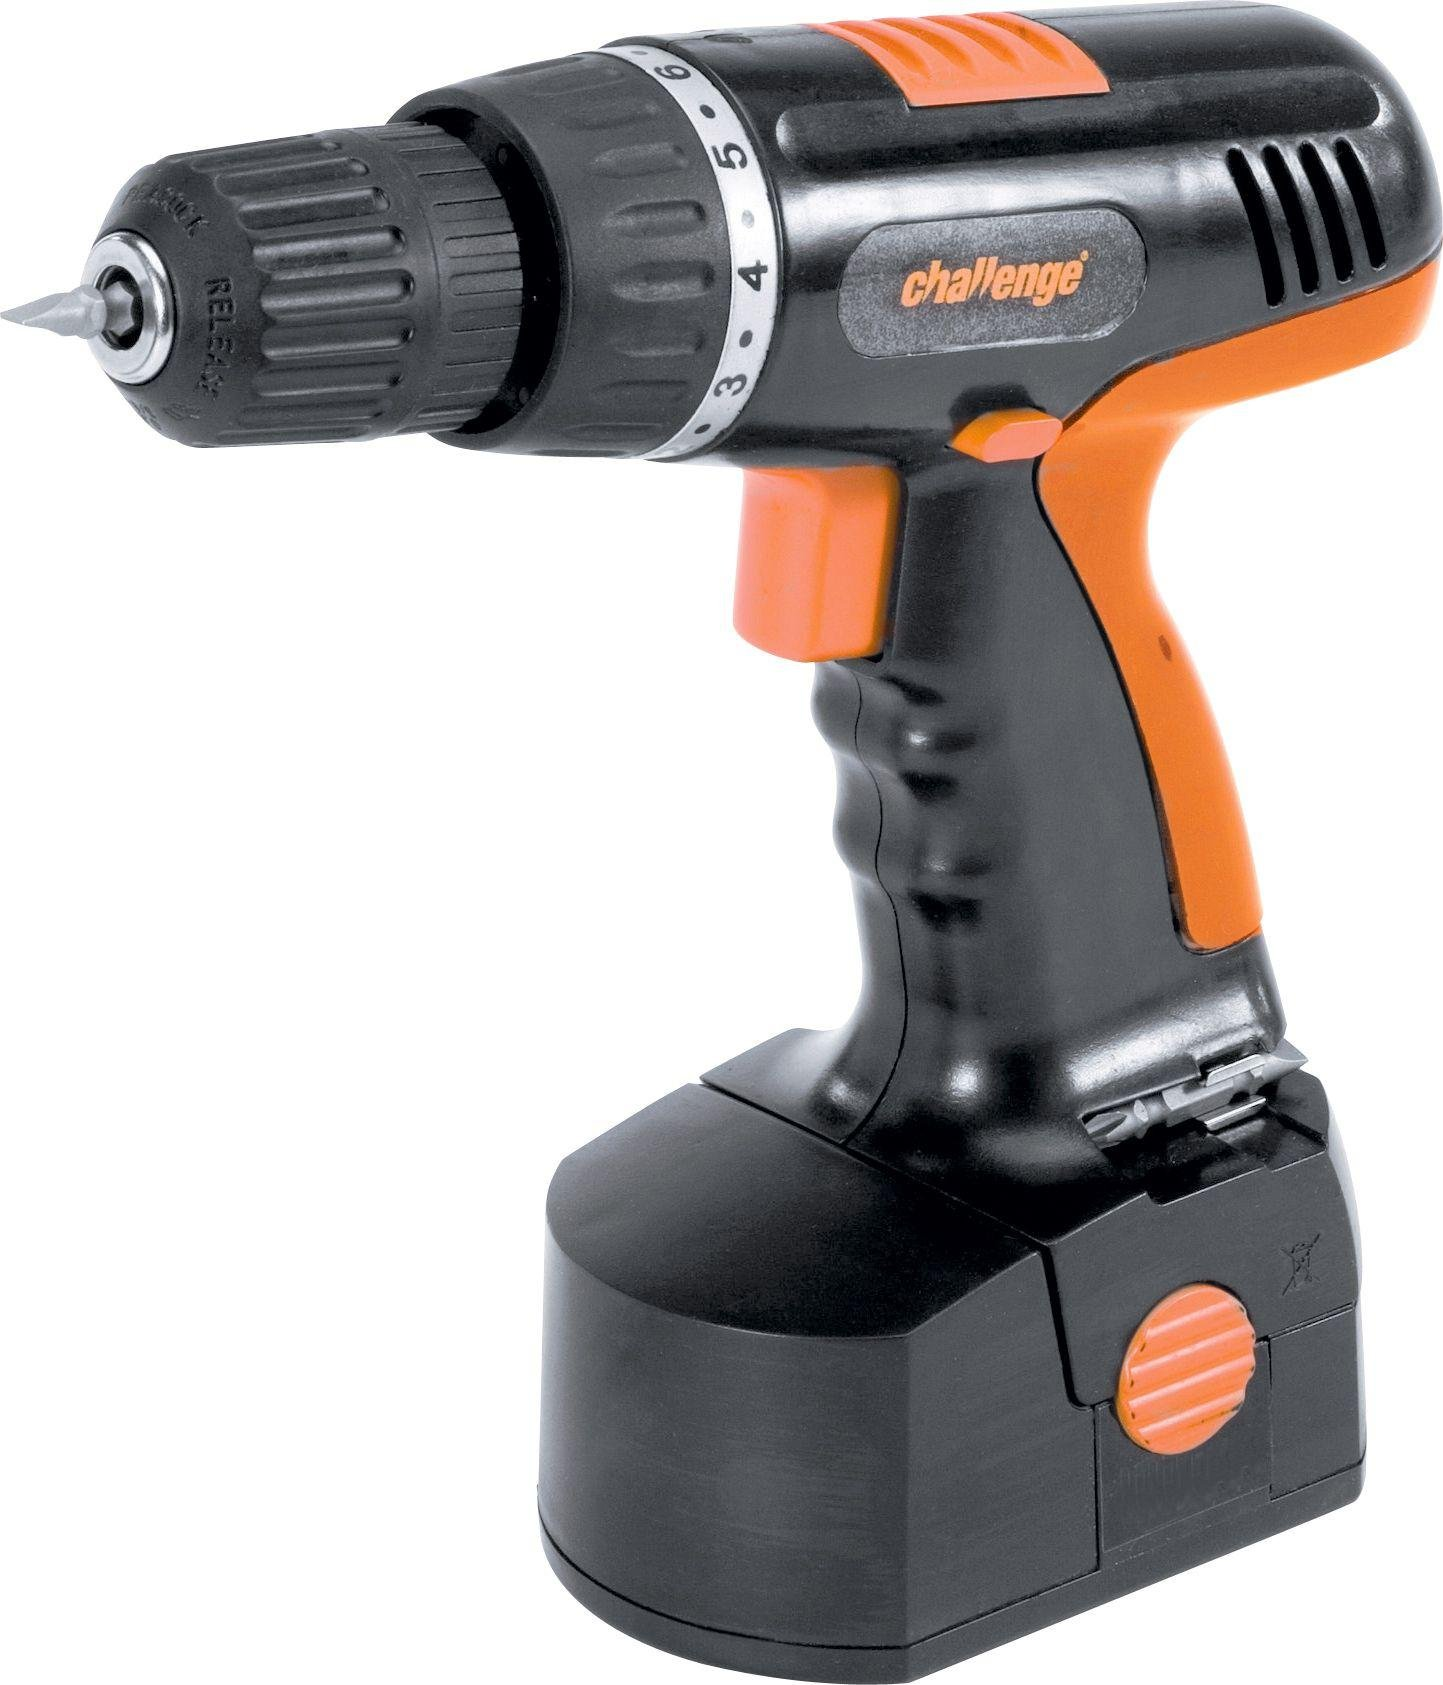 Challenge 18V Cordless Drill Driver. Review